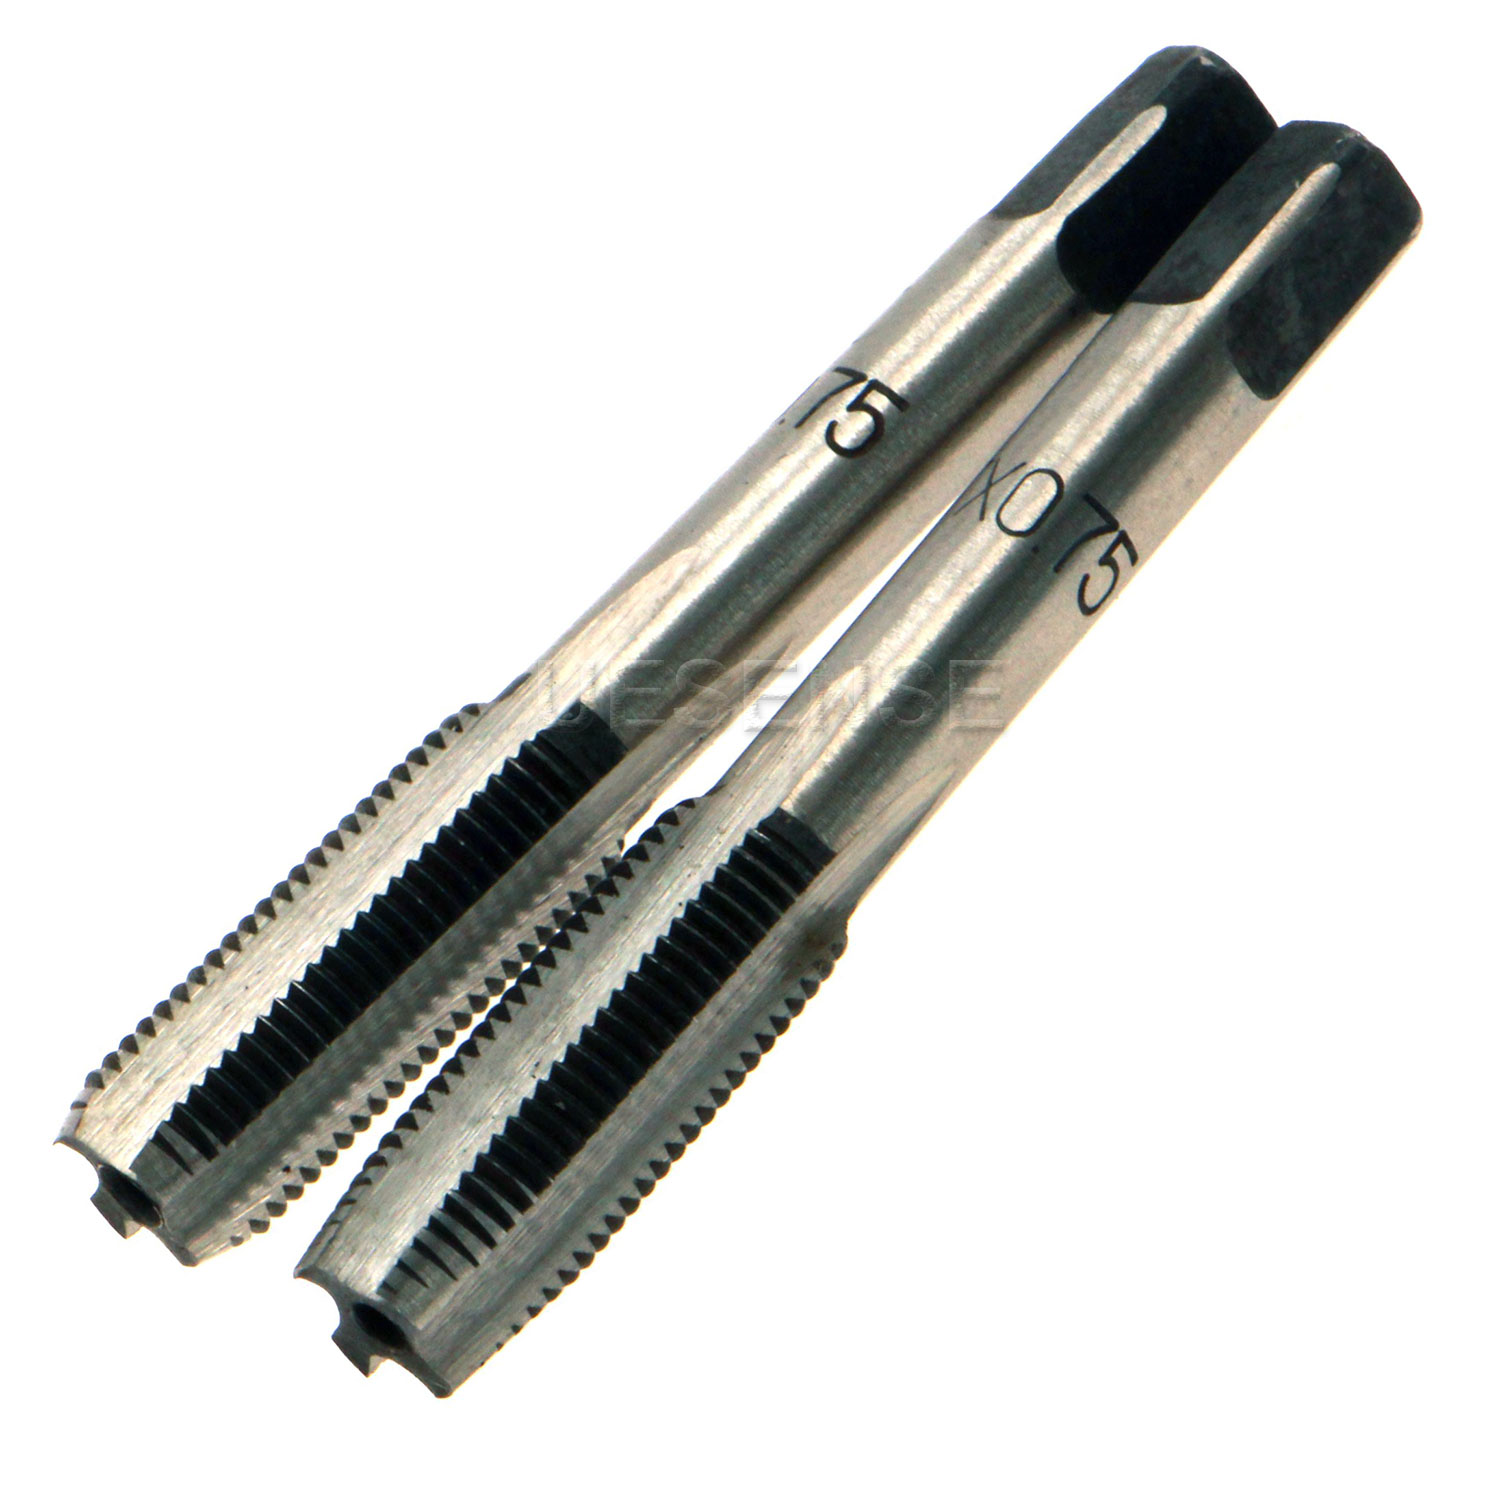 7mm X .75 Metric Taper and Plug Tap M7 X 0.75mm Pitch New Free Shipping